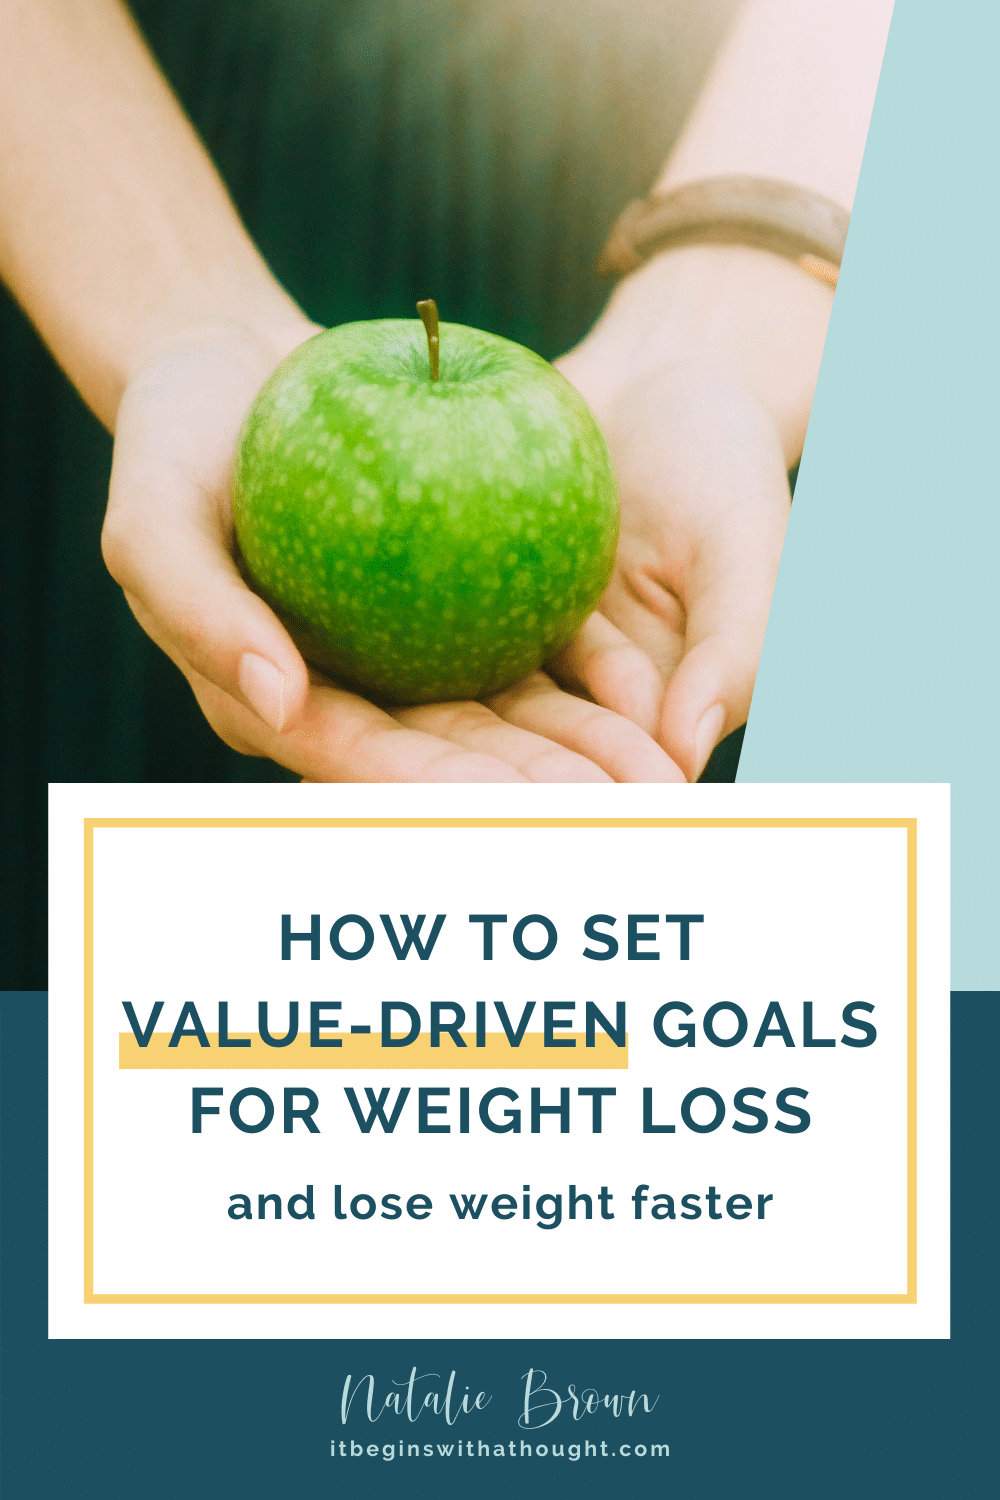 Create value-driven weight loss goals to skyrocket your results. Get conscious about your choices and how they help or hurt your overall goal.